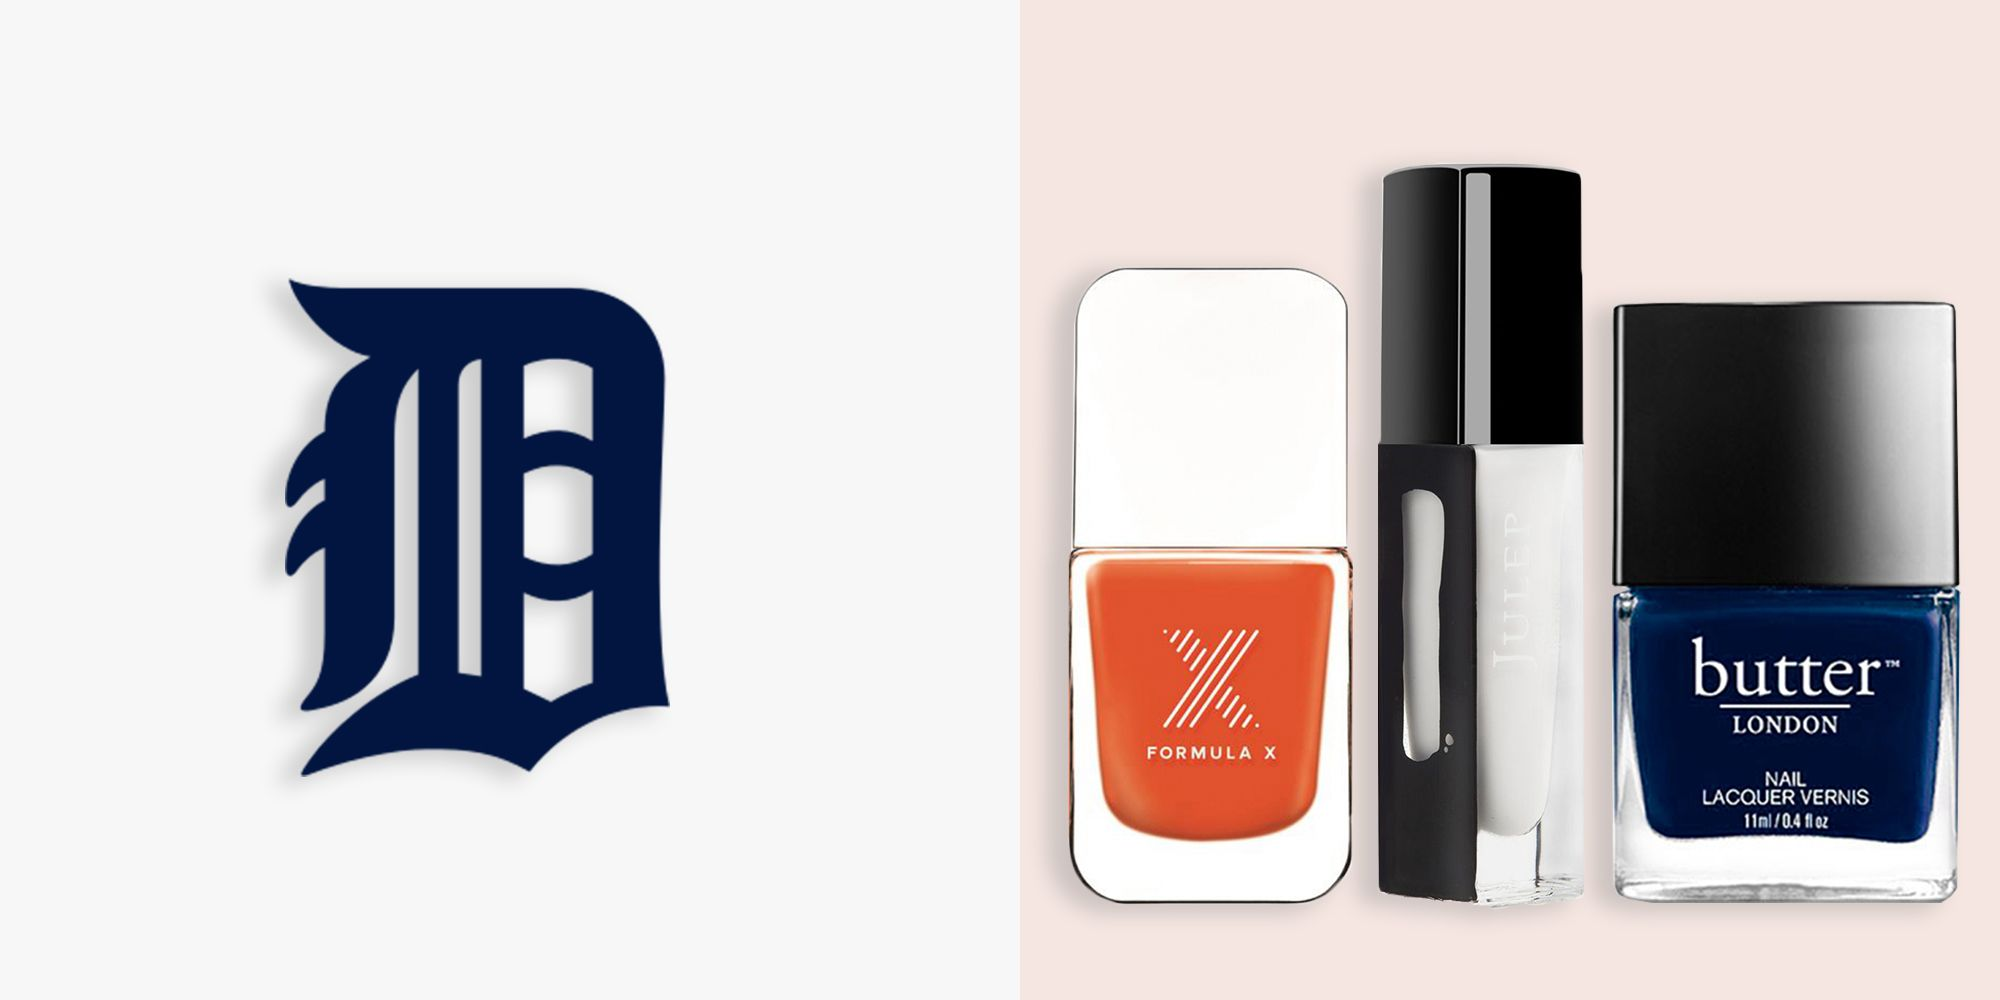 """<p><em><strong><em><strong>Formula X The Colors in Uber, $11, <a href=""""http://www.sephora.com/the-colors-nail-polish-P382111?skuId=1546951"""" target=""""_blank"""">sephora.com</a></strong></em>&#x3B; Julep Nail Polish in Brigitte, $14, <a href=""""http://www.julep.com/shop/new-arrivals/double-tap/brigitte-classic-with-a-twist.html """" target=""""_blank"""">julep.com</a>&#x3B; BUTTER London Nail Lacquer in Royal Navy, $15, <a href=""""http://www.butterlondon.com/Lacquers/Dark-Nail-Lacquers/Royal-Navy.html """" target=""""_blank"""">butterlondon.com</a></strong></em></p><p>Pay homage to the Detroit Tigers with fiercely fabulous tips. To start, cover each nail with two coats of BUTTER London's deep navy shade, followed by a thin tip of Julep's wash-out white for an alternative French mani. Making sure all colors are accounted for, place a solid, medium-sized dot of orange at the center of each nail for a basic design that looks quite intricate.</p>"""